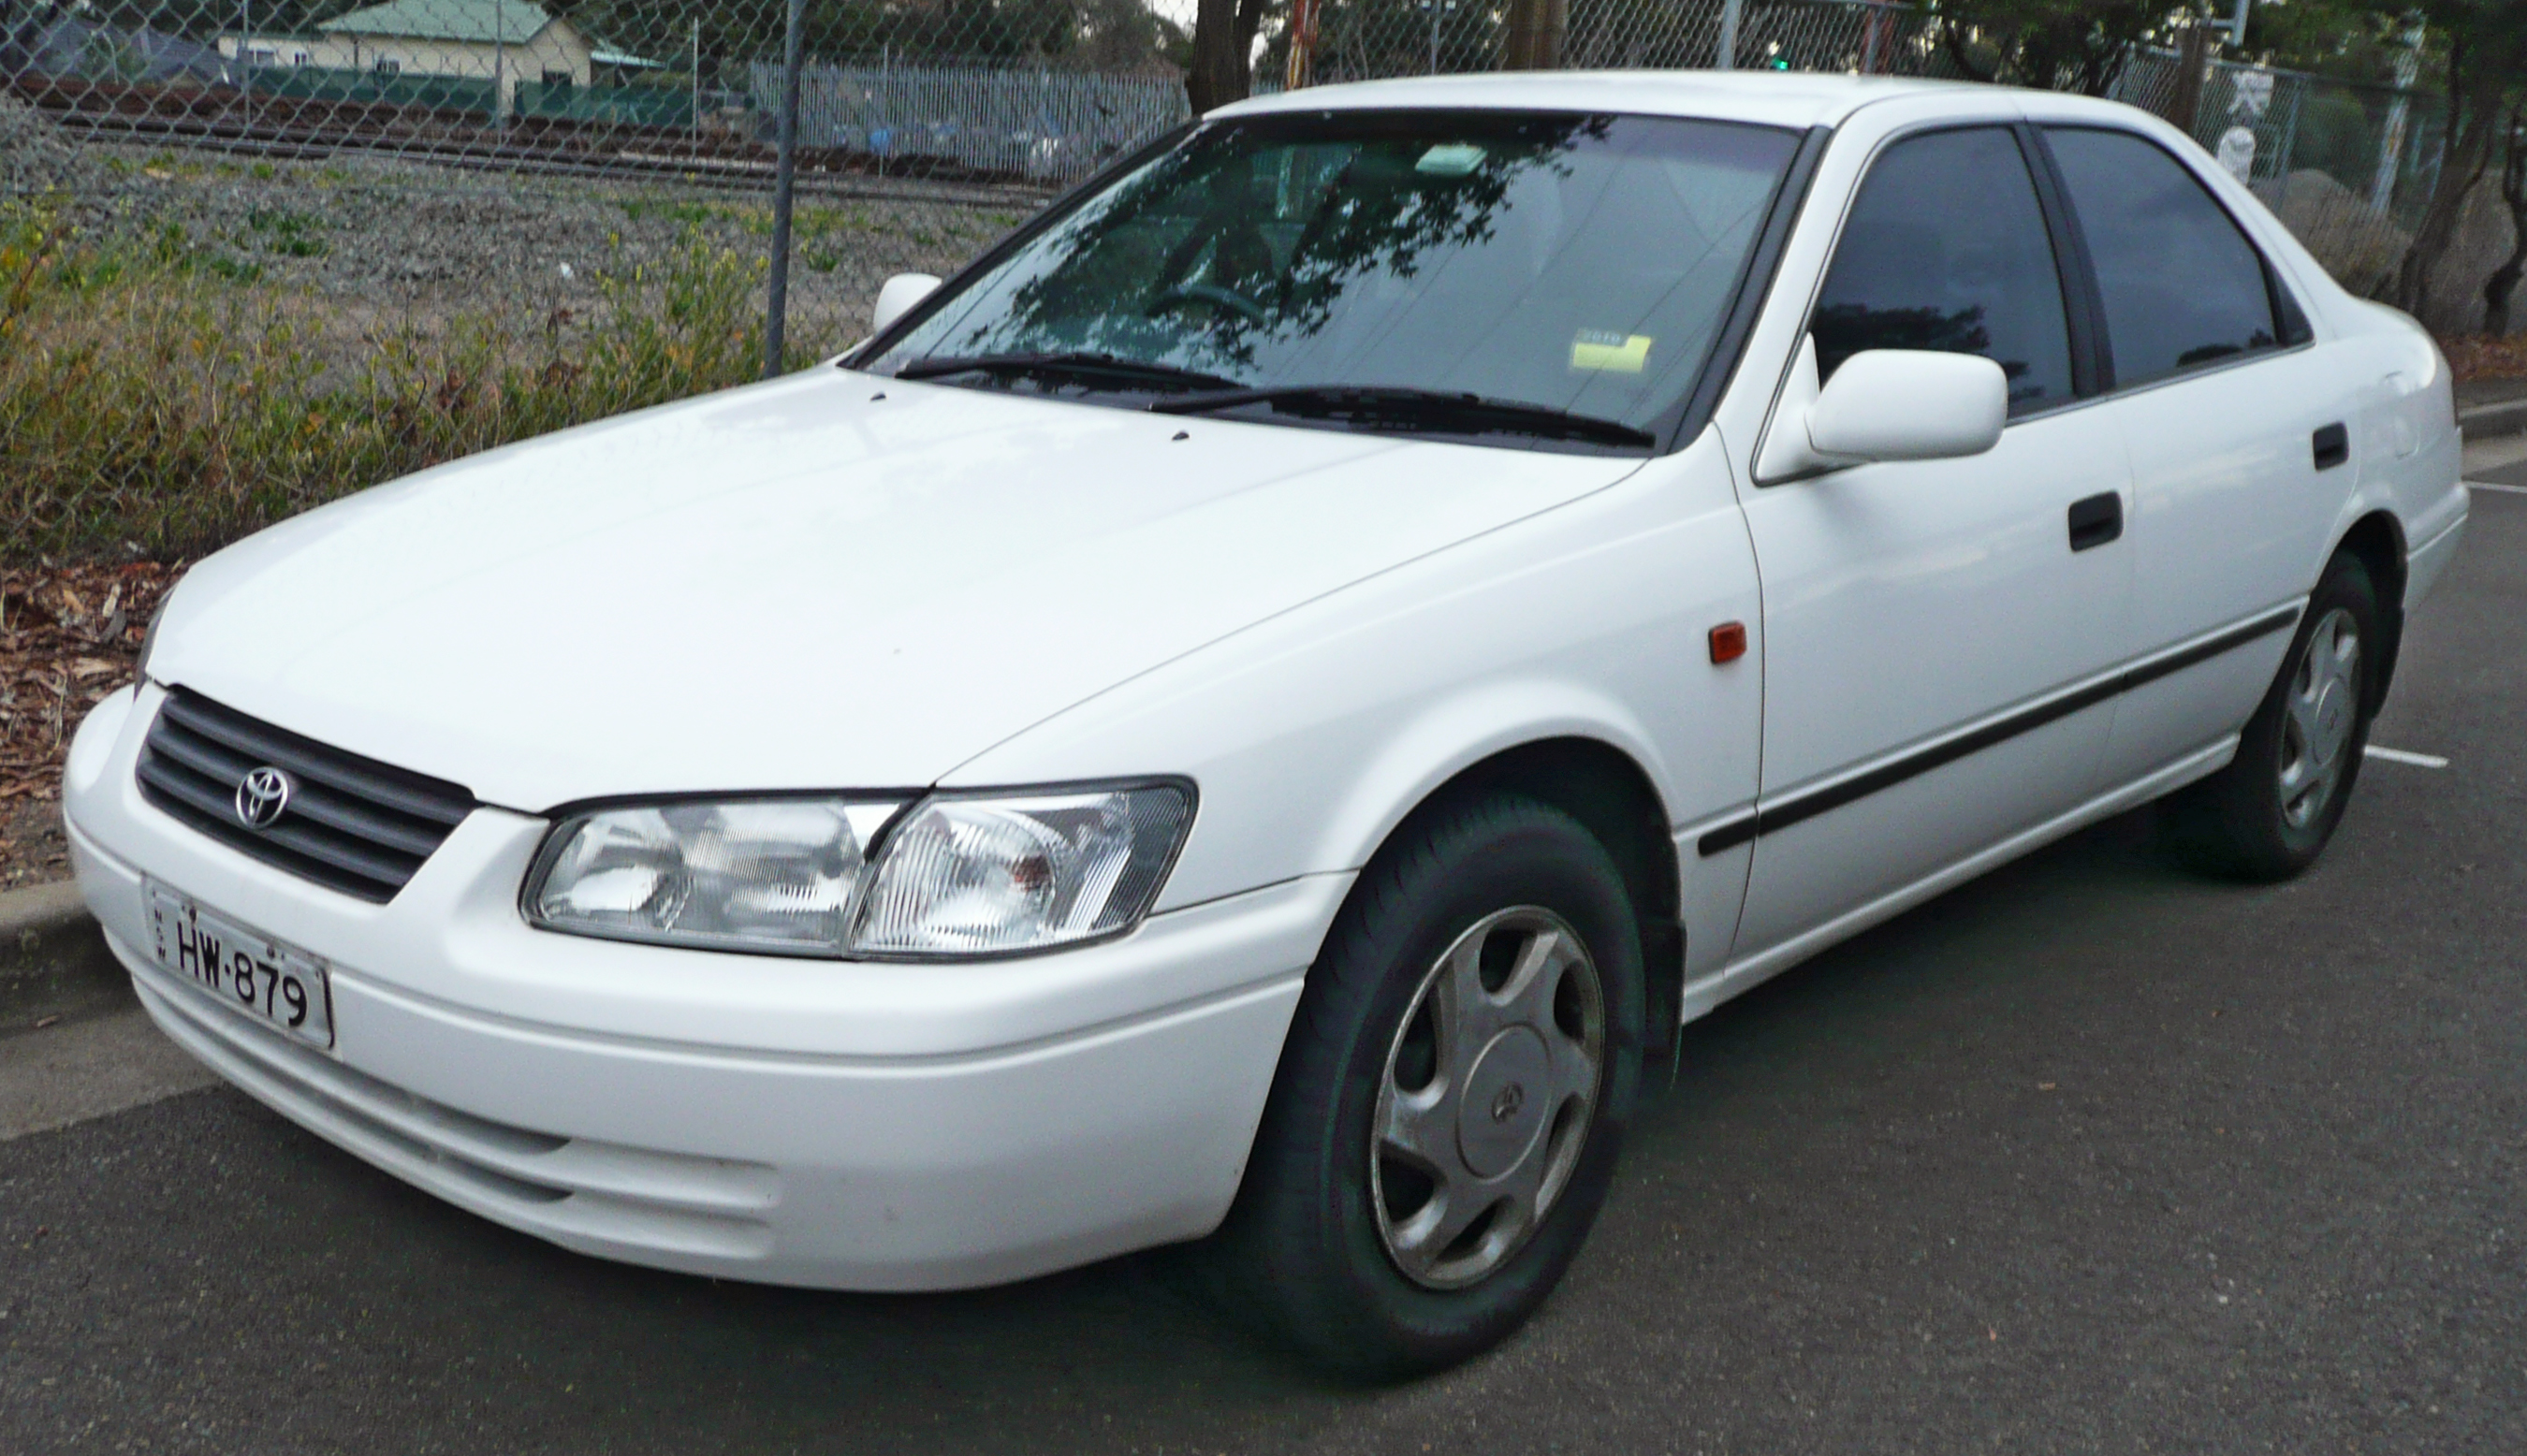 2000 Toyota Camry - Information and photos - MOMENTcar